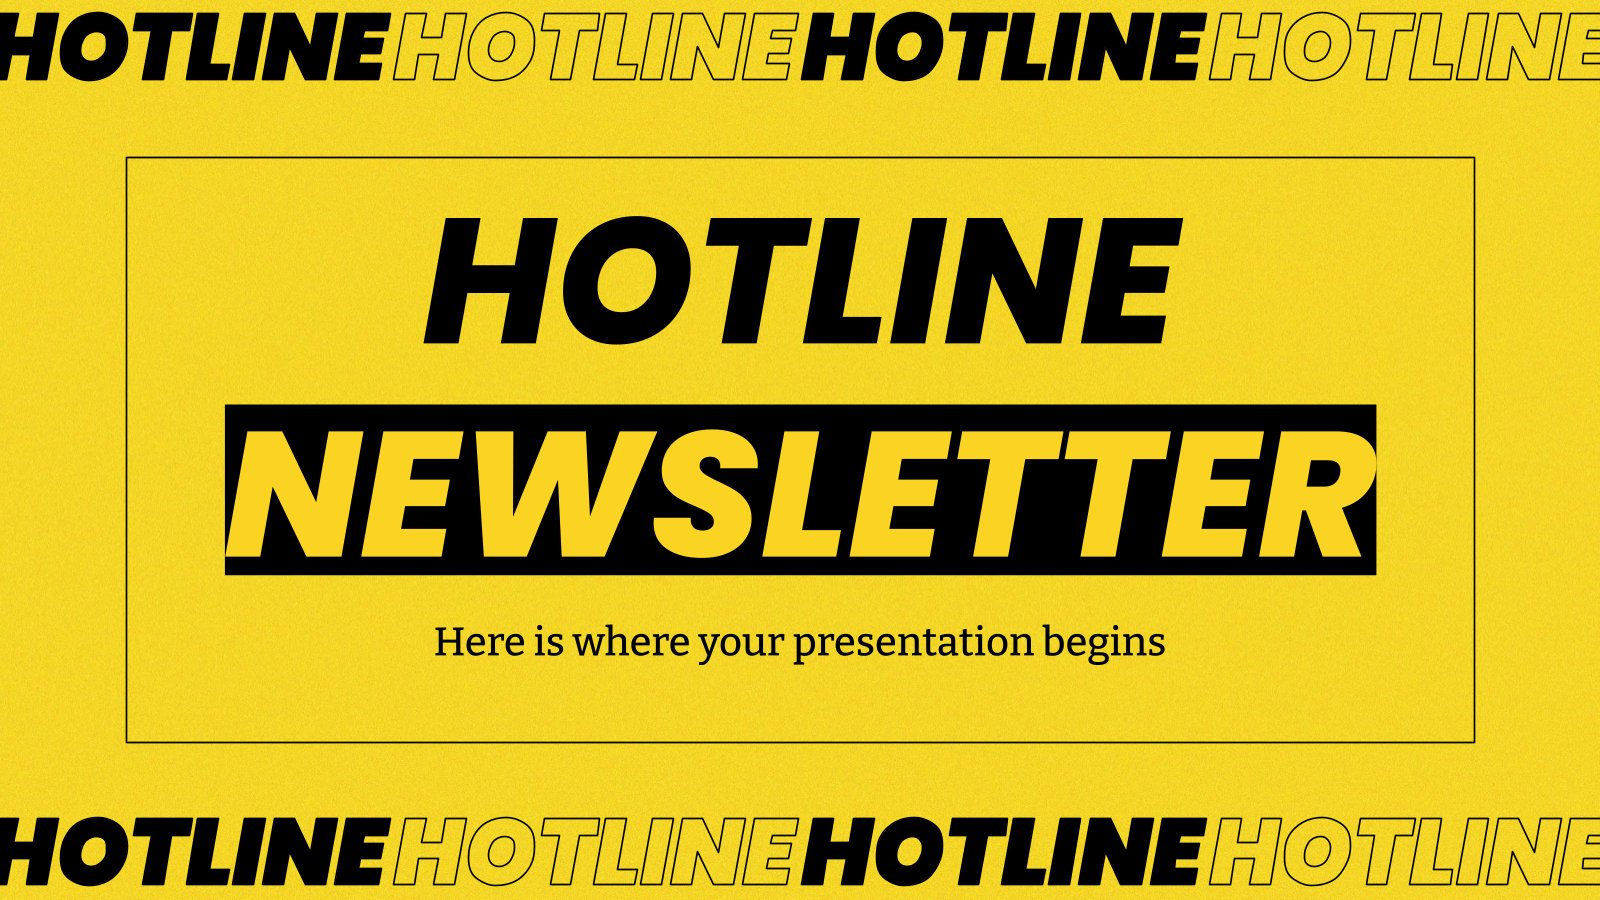 Hotline-Newsletter Präsentationsvorlage